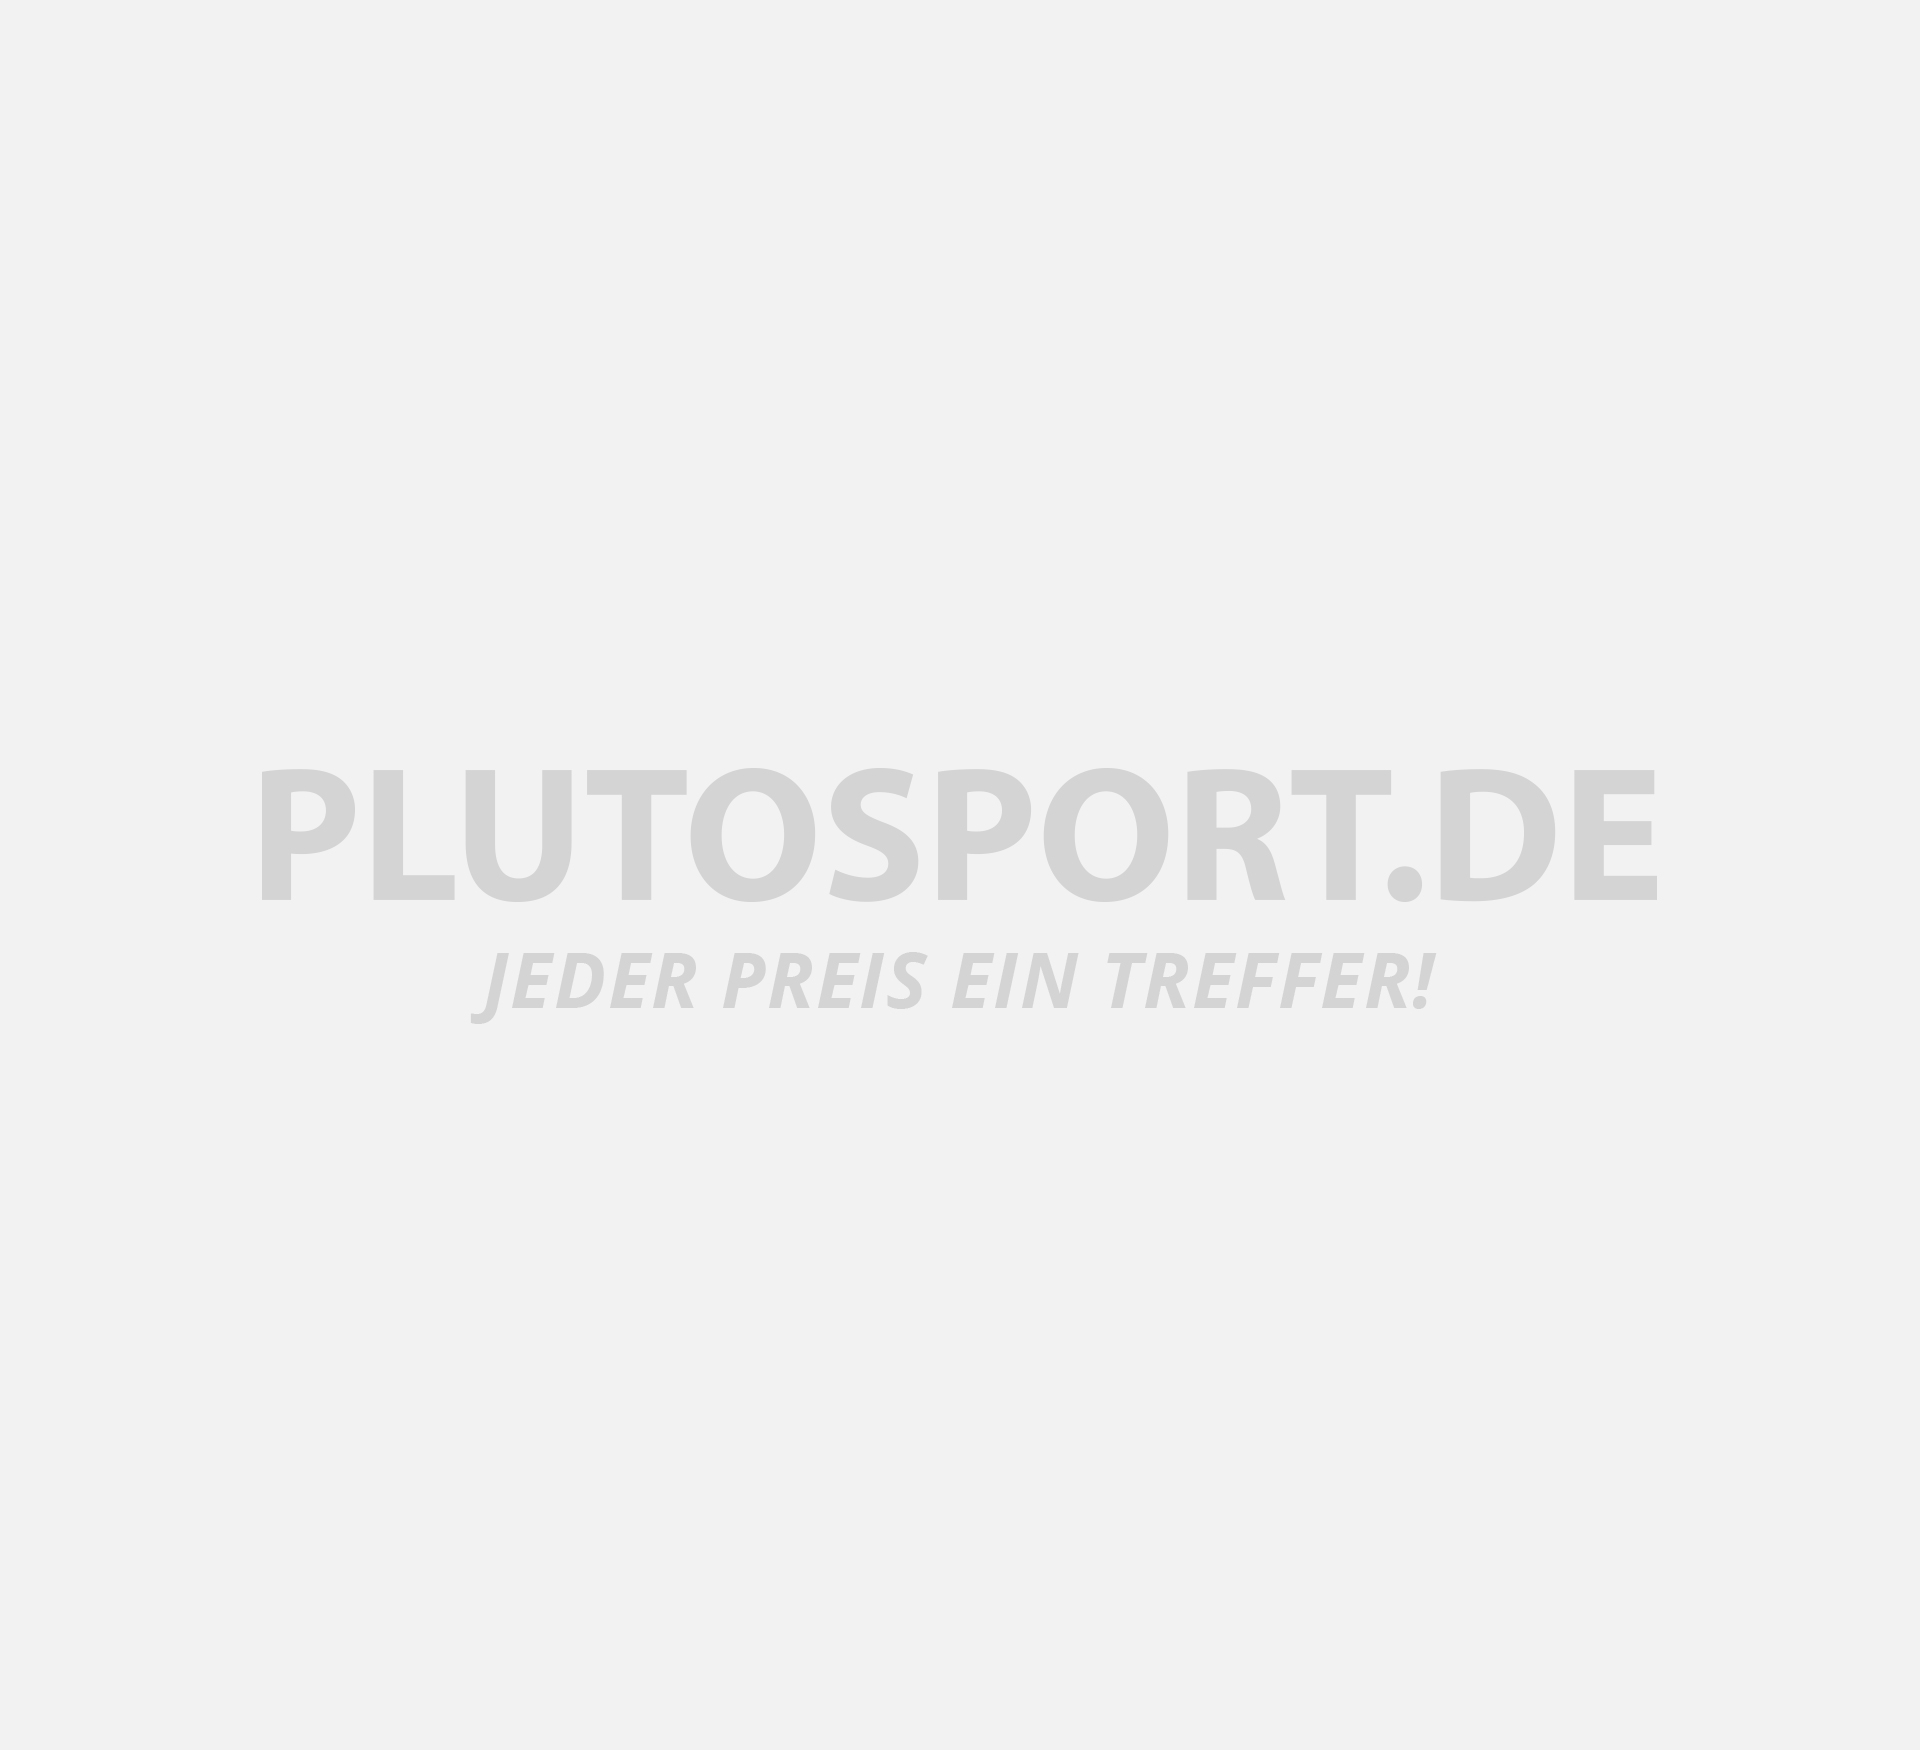 Adidas Uniforia League Box Fußball EK 2020